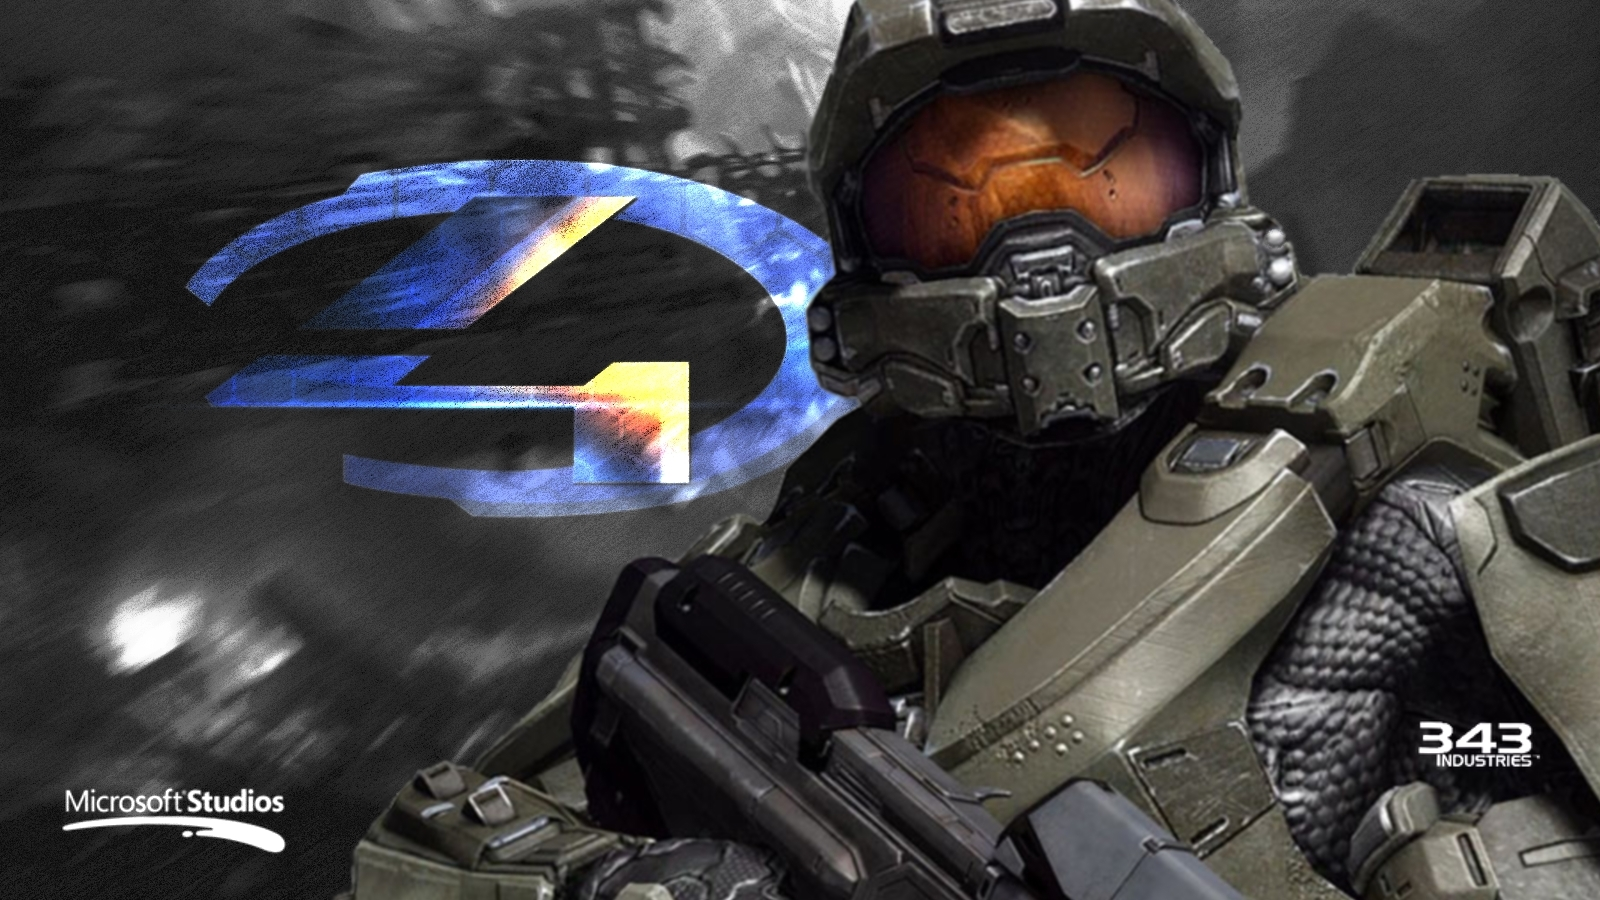 http://3.bp.blogspot.com/-7IMqcaH51wo/UJLfwXONpEI/AAAAAAAASUo/VRLfELOu0Uk/s1600/Halo_4_Game_Wallpaper.jpg